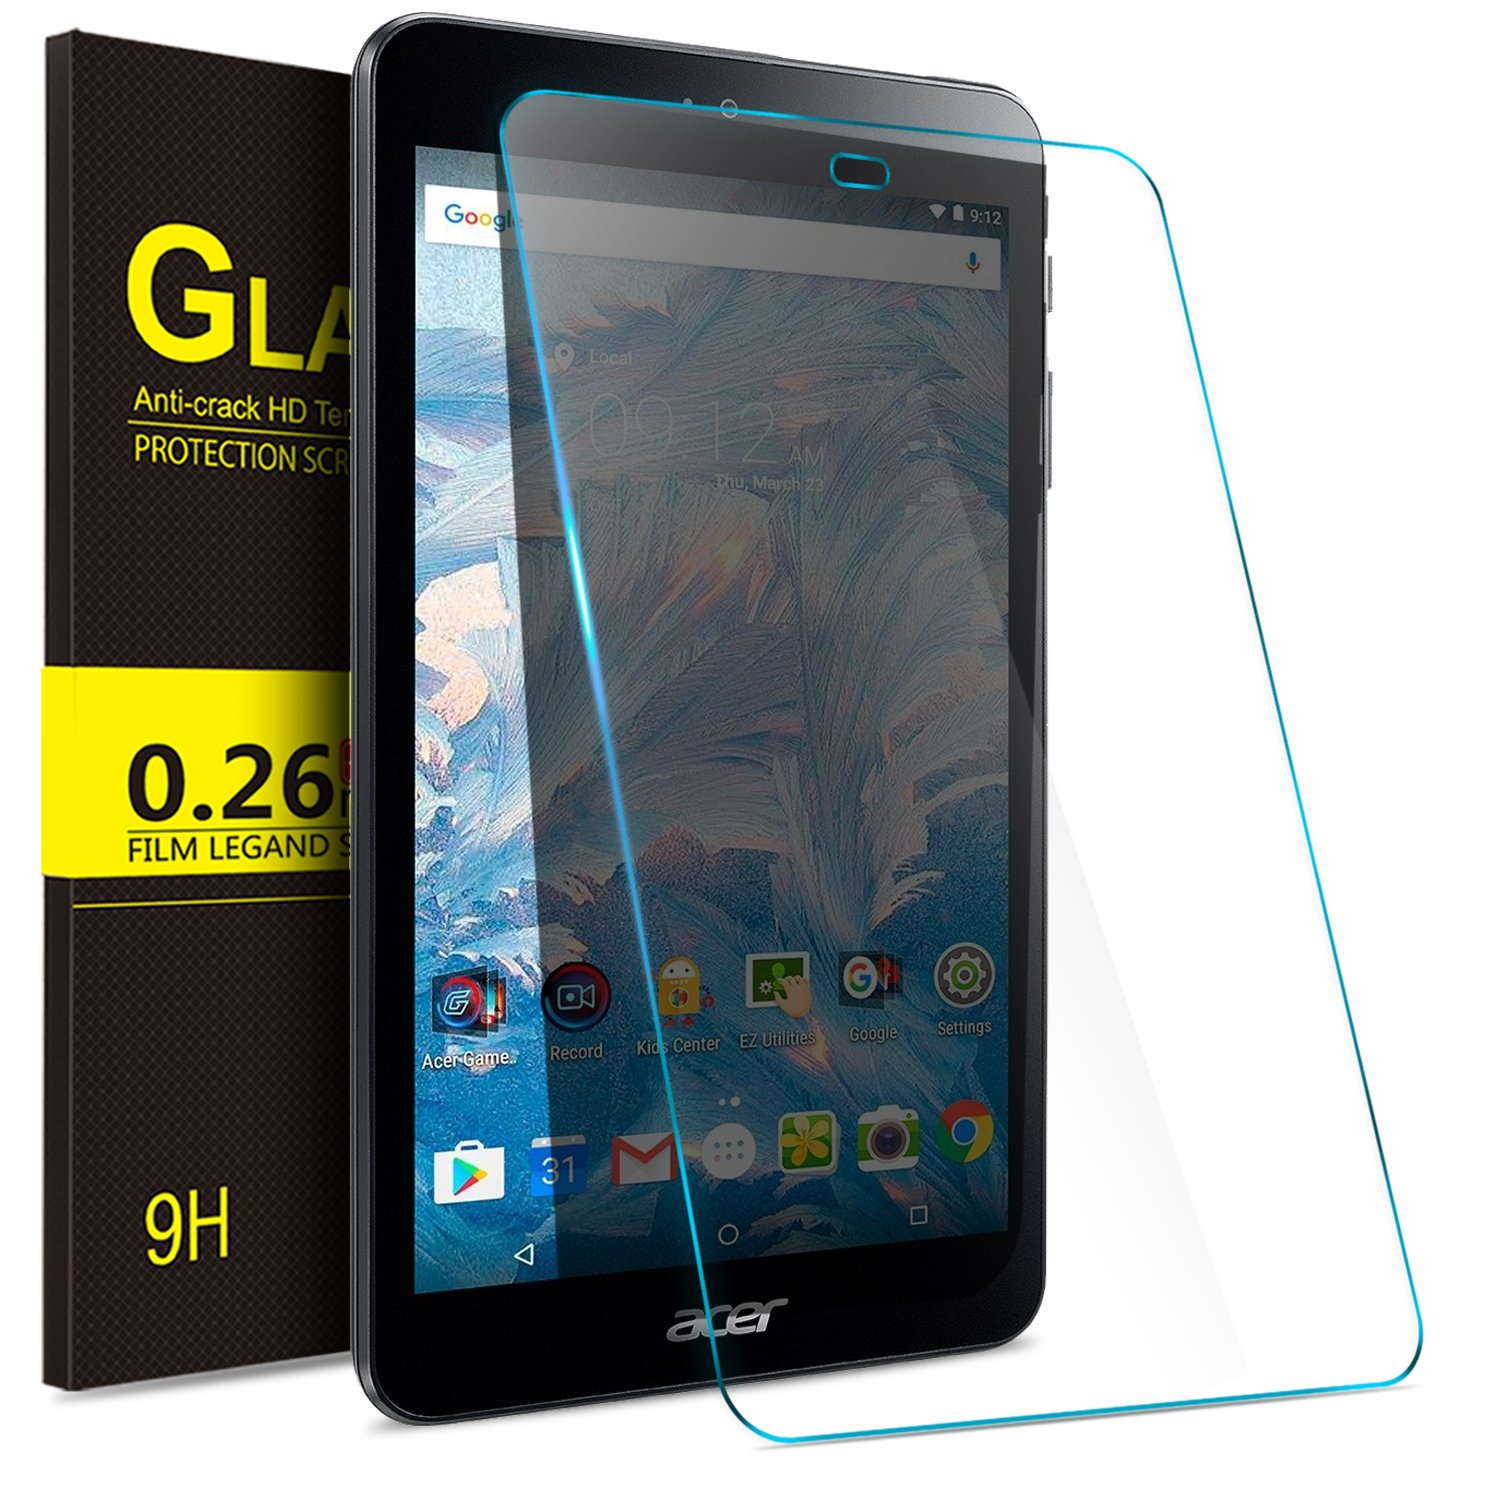 Tempered Glass Screen Protector for Acer Iconia One 7 B1-7A0 only